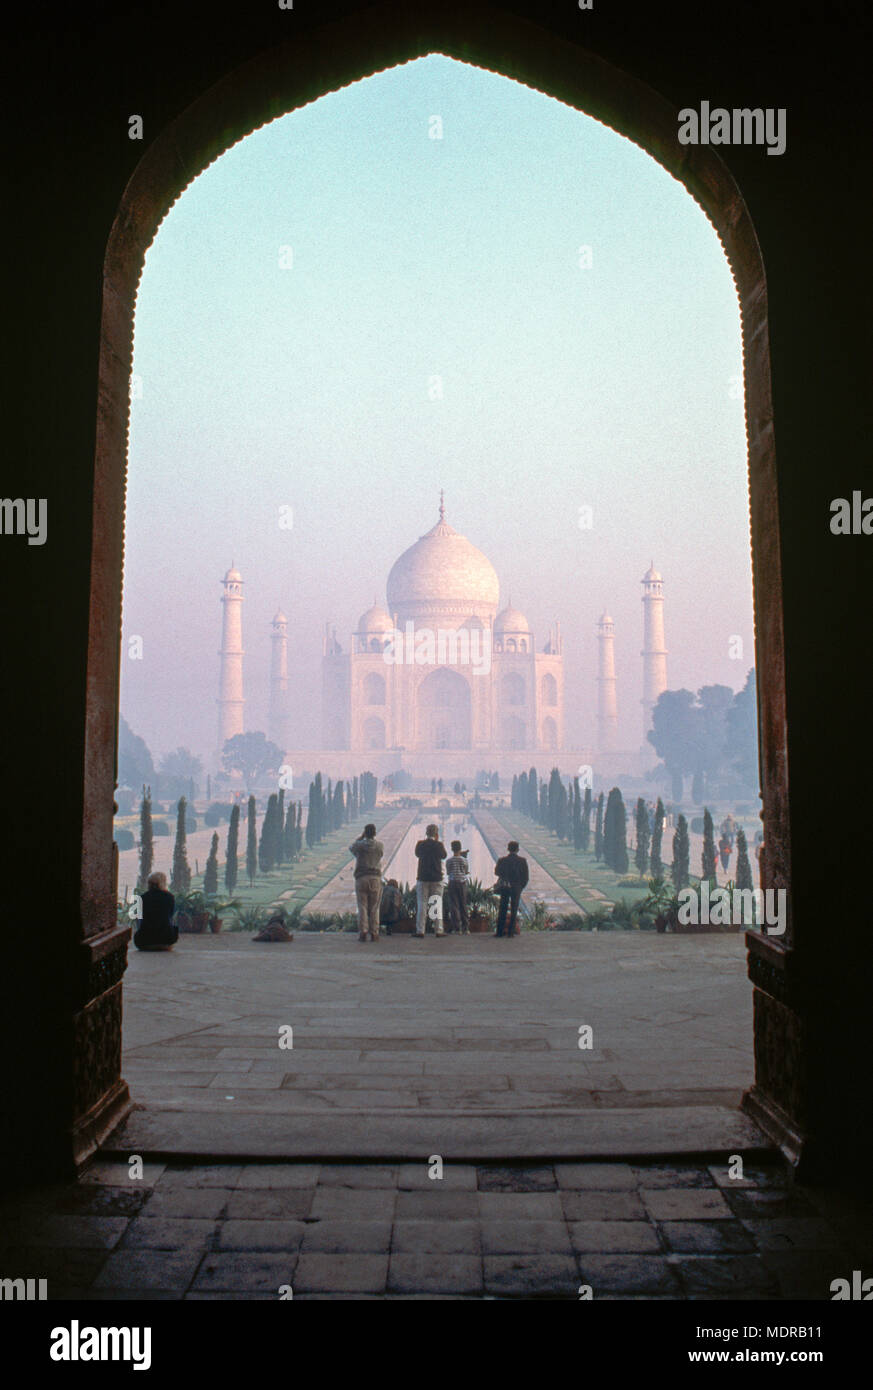 Agra, India; Taj Mahal seen through archway - Stock Image